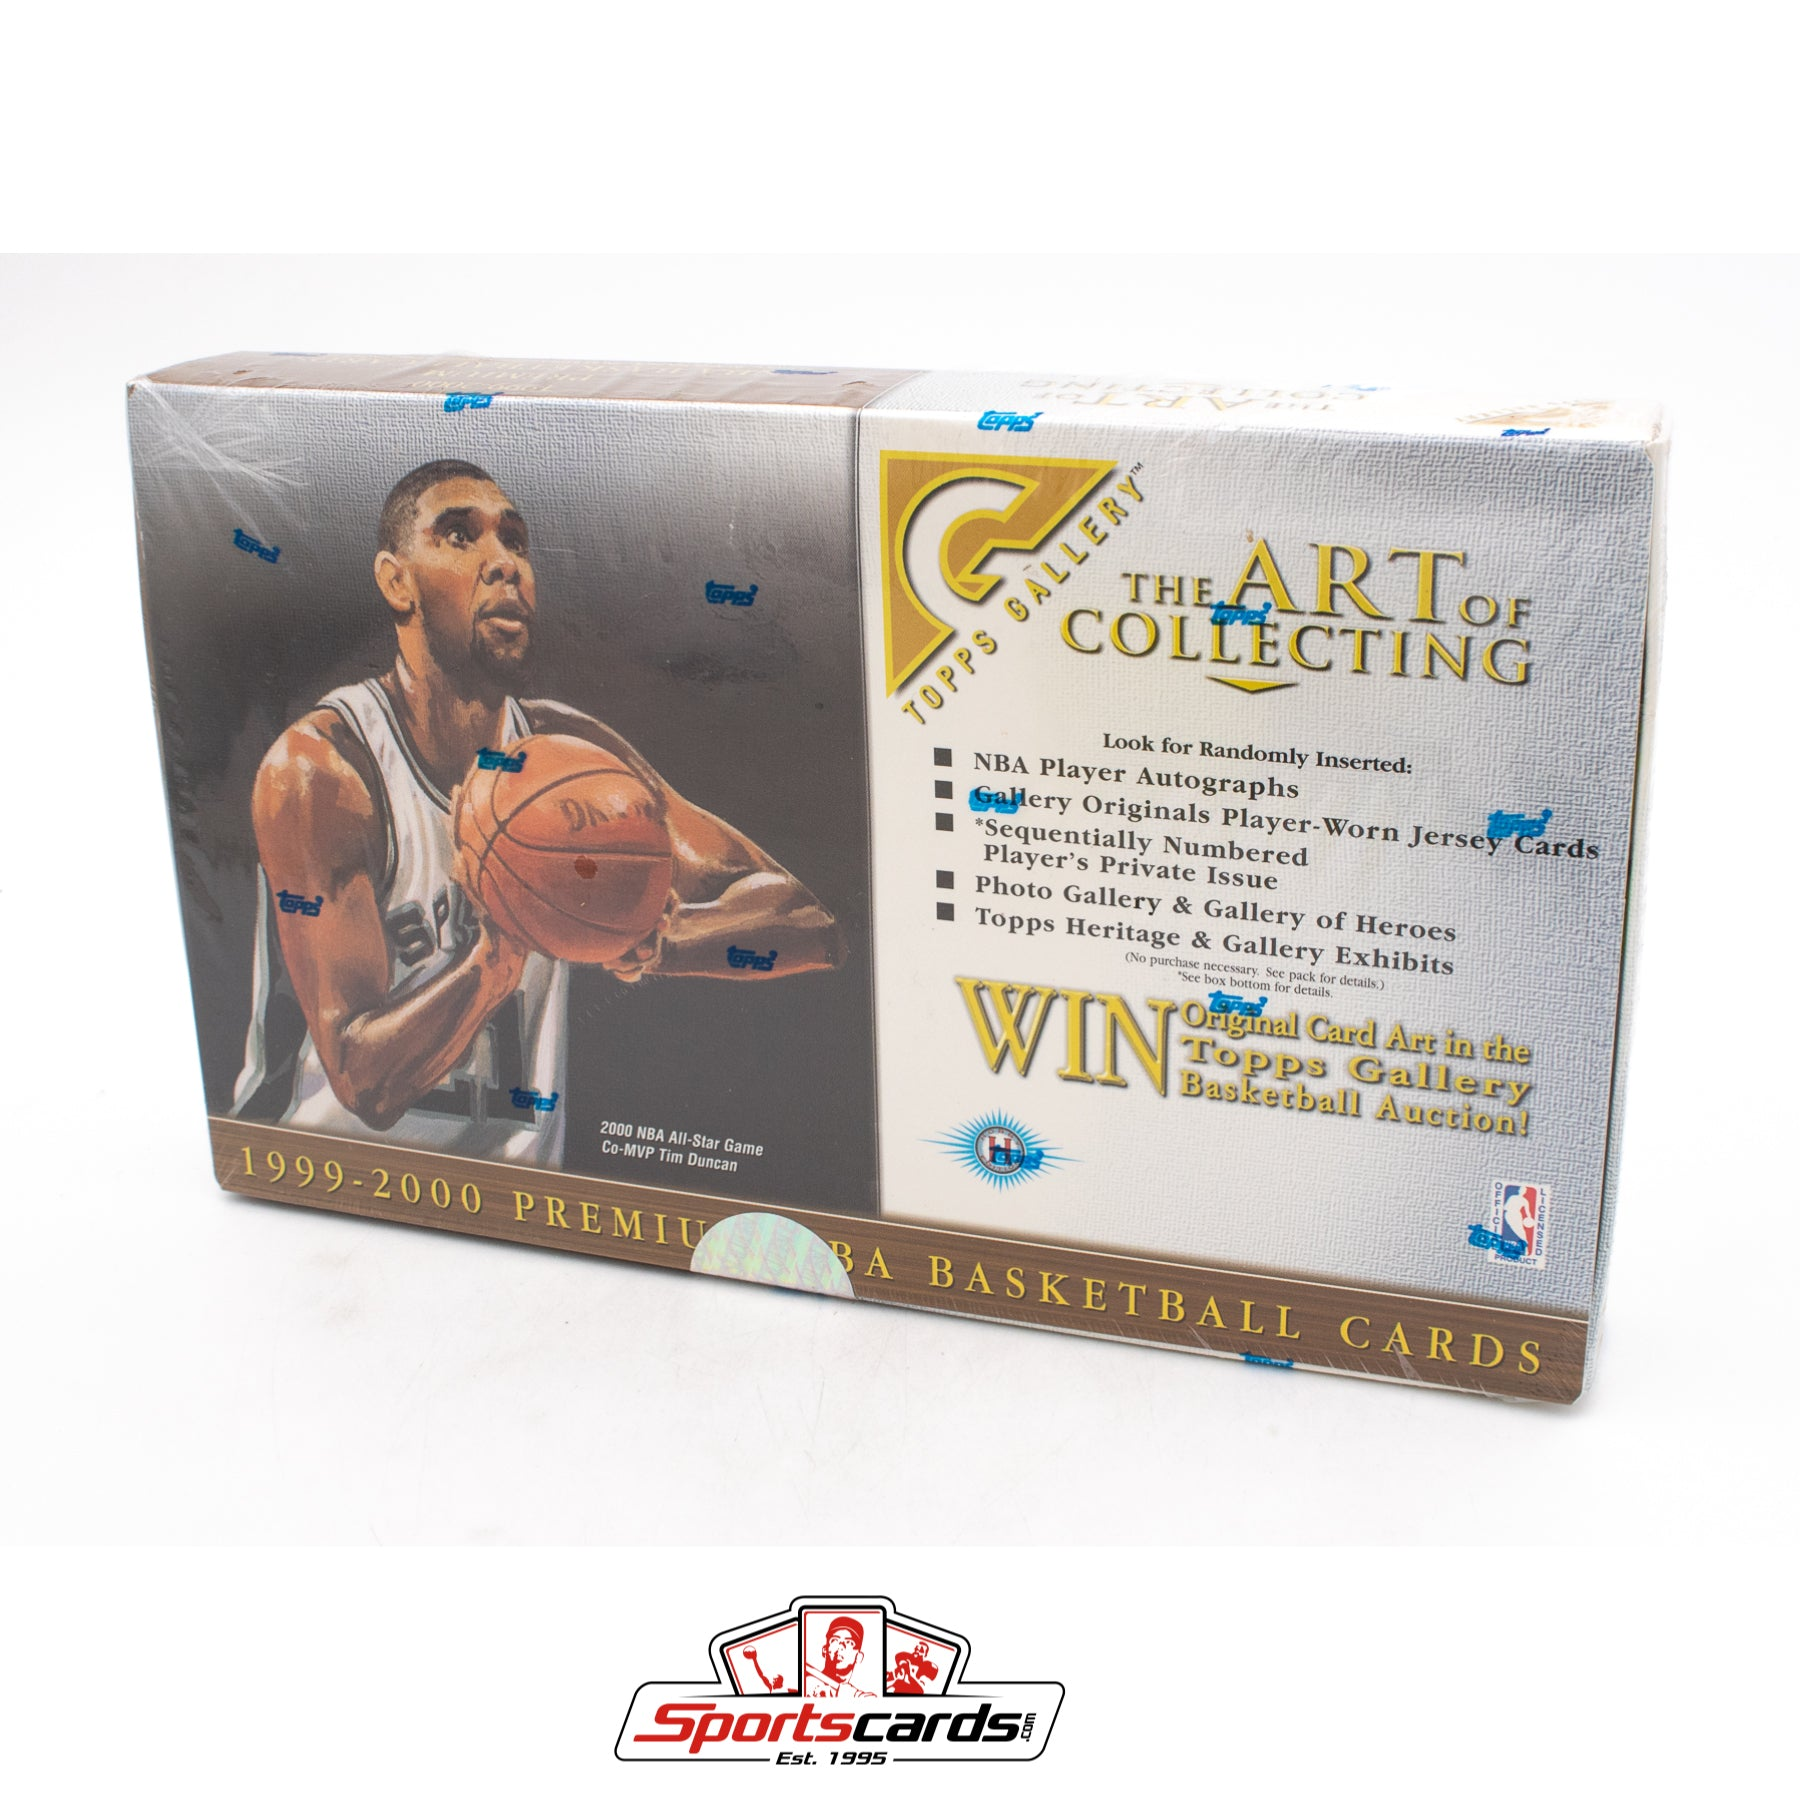 1999-2000 Topps Gallery Premium NBA Basketball Factory Sealed Hobby Box